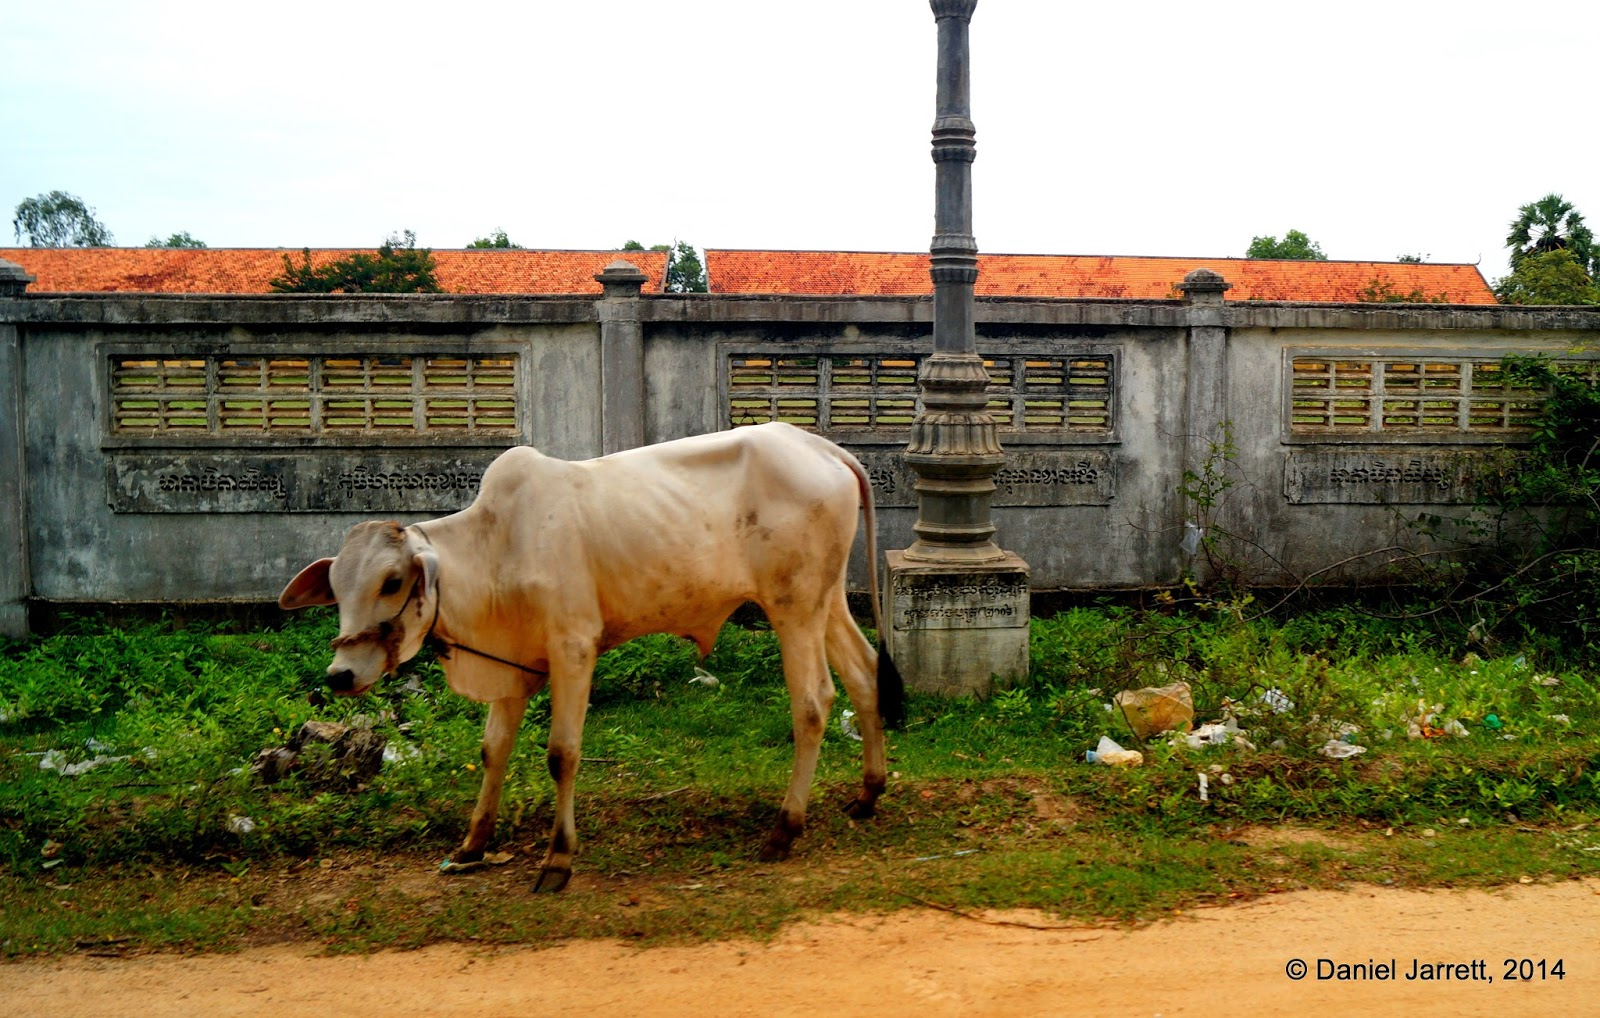 Cow on the road, Cambodia